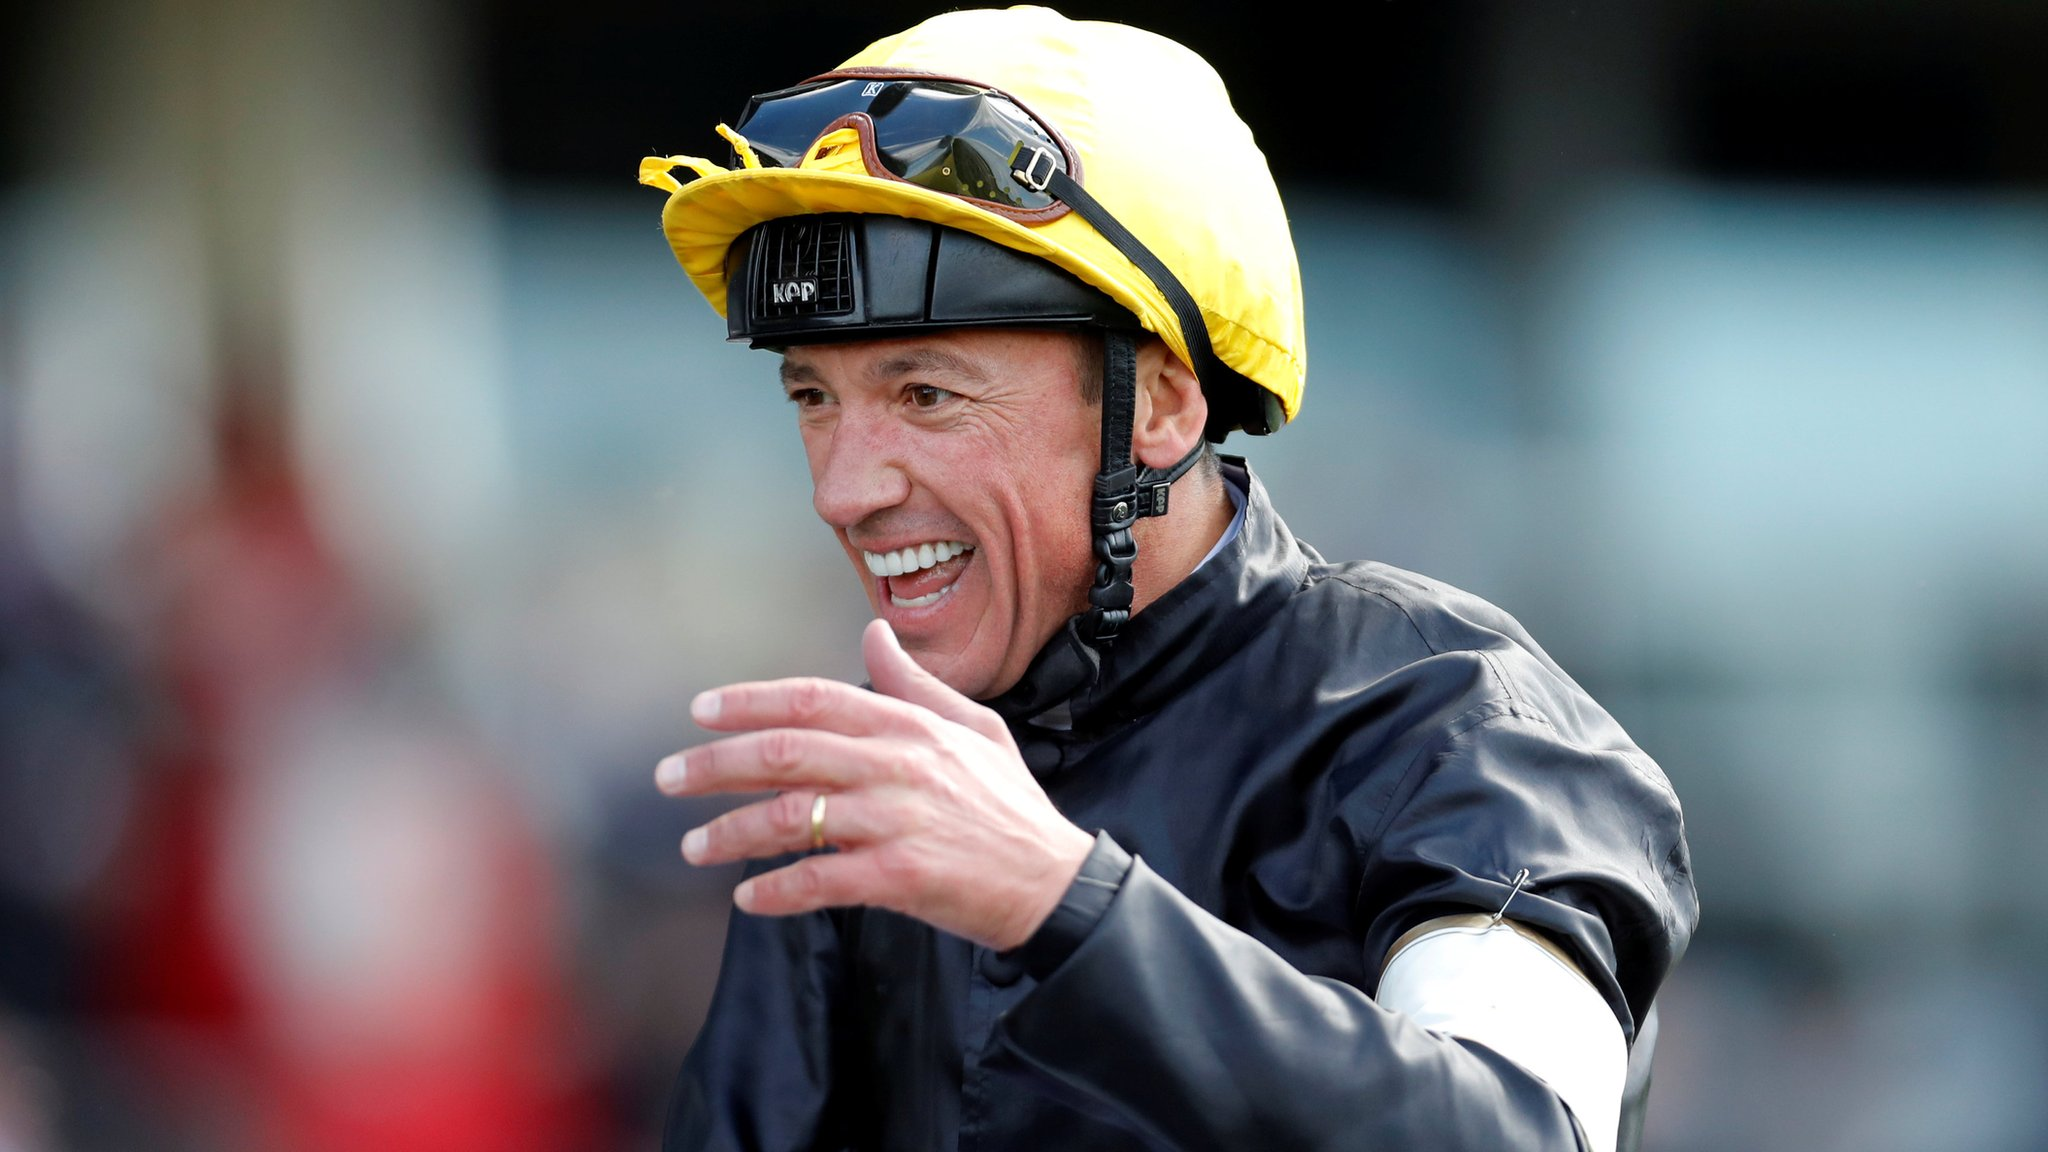 Royal Ascot 2018: Stradivarius wins Gold Cup at Ascot for Frankie Dettori